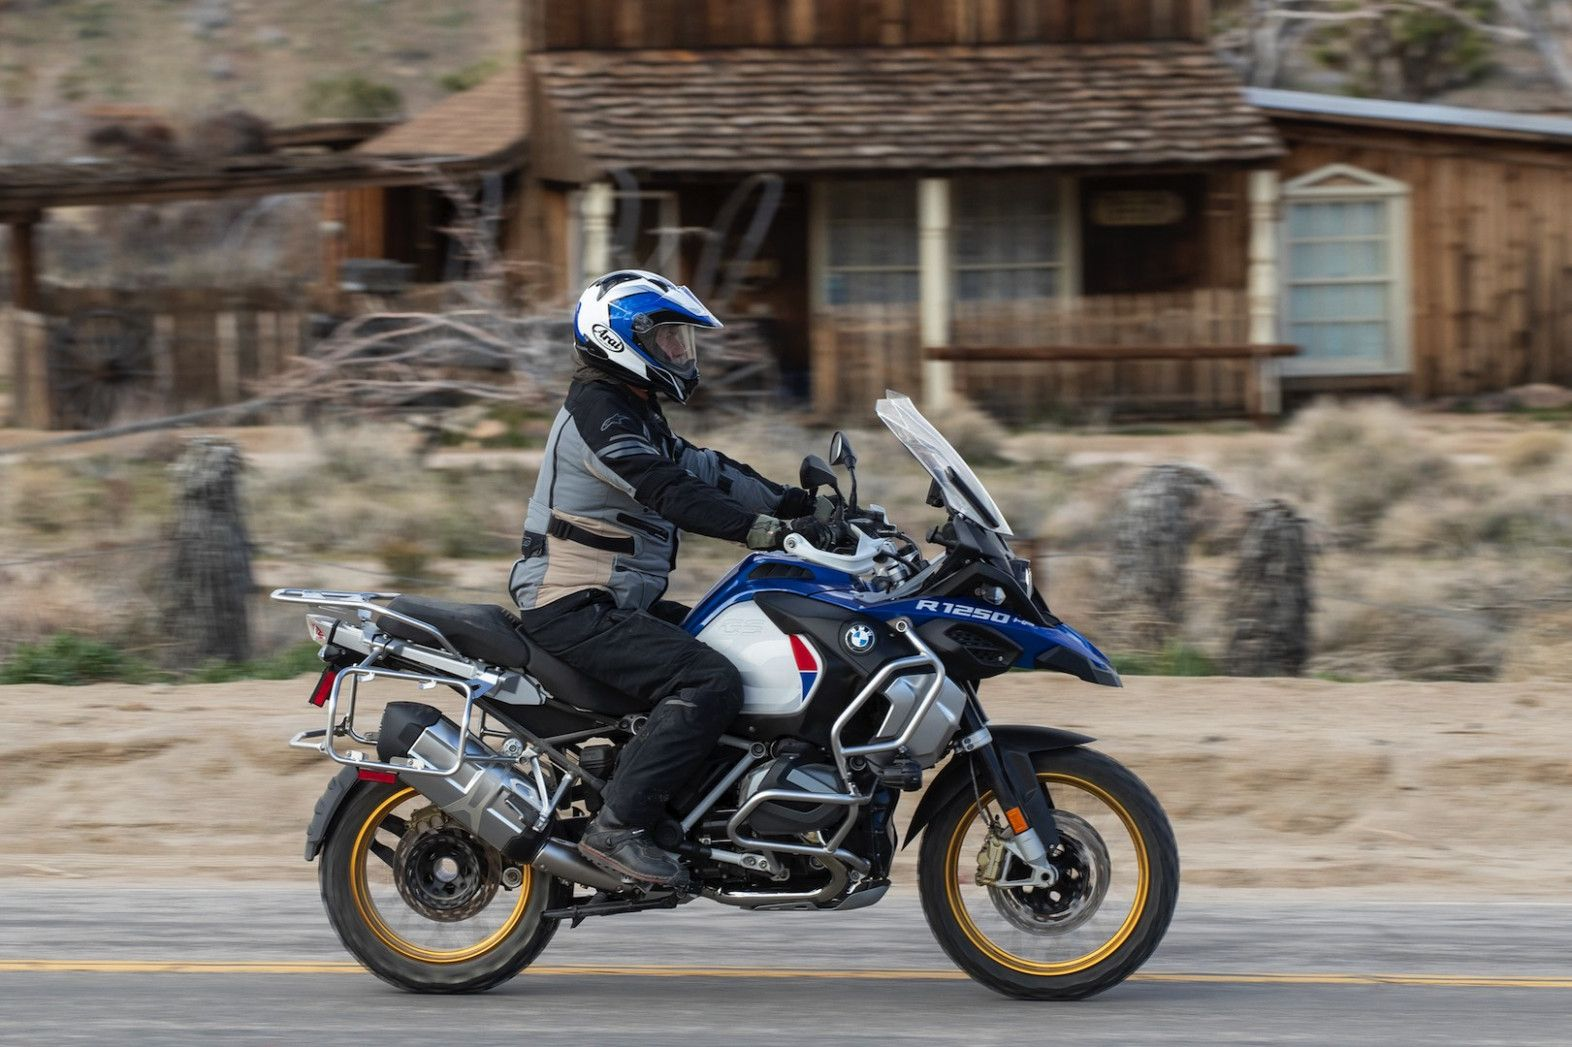 5 Bmw R 5 Gs Adventure Review 5 Fast Facts Bmw Gsa 2020